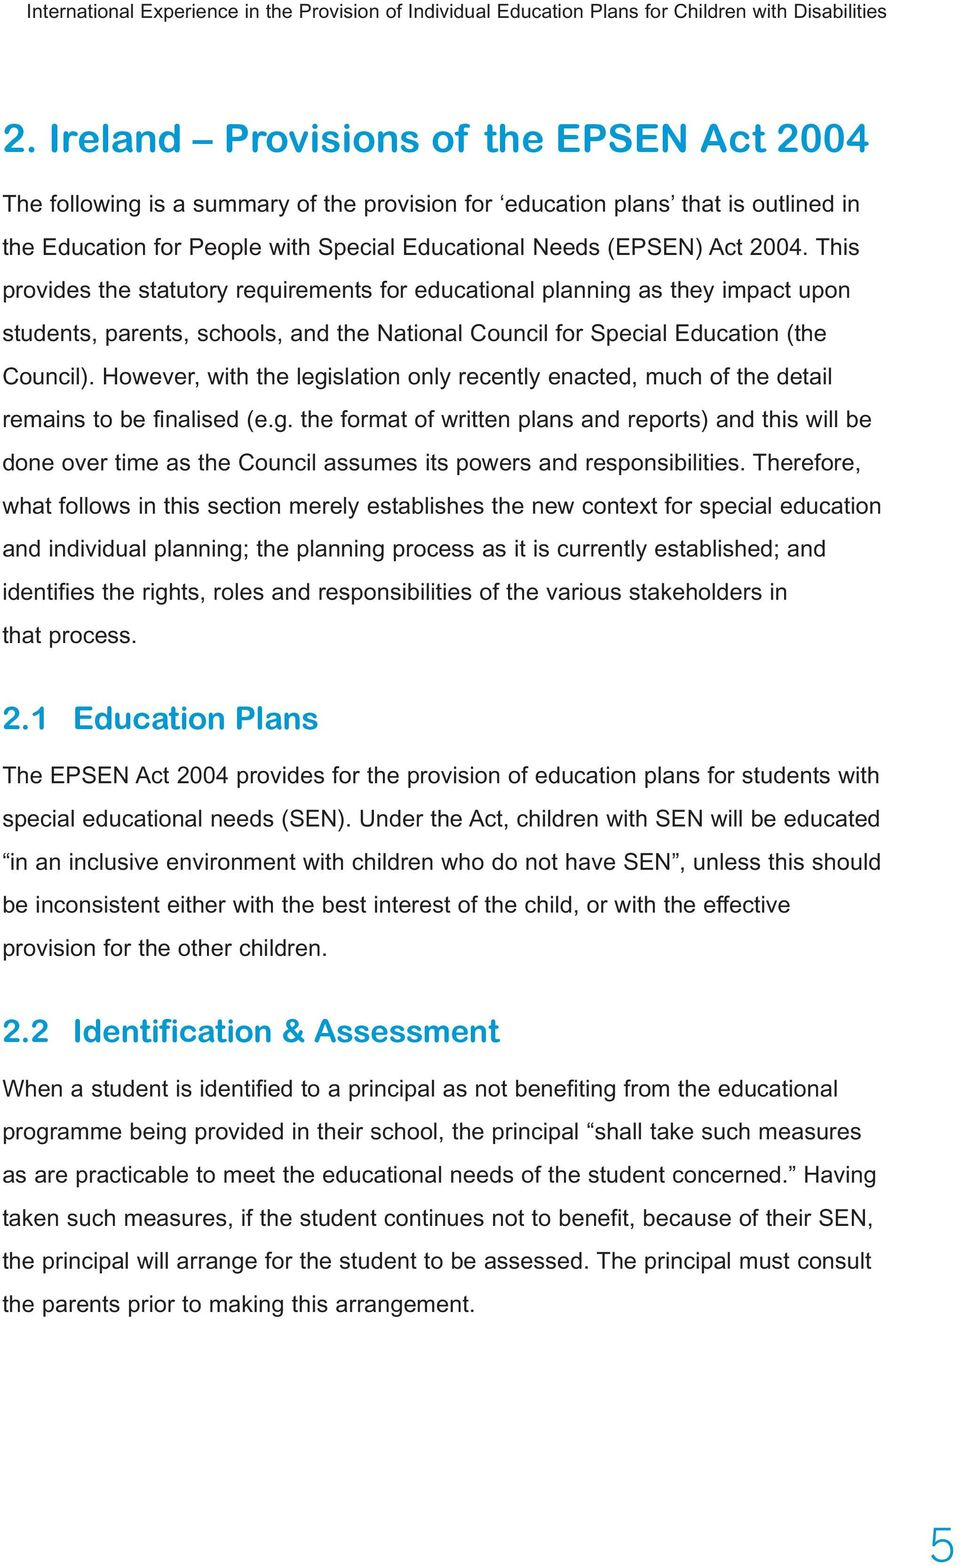 This provides the statutory requirements for educational planning as they impact upon students, parents, schools, and the National Council for Special Education (the Council).